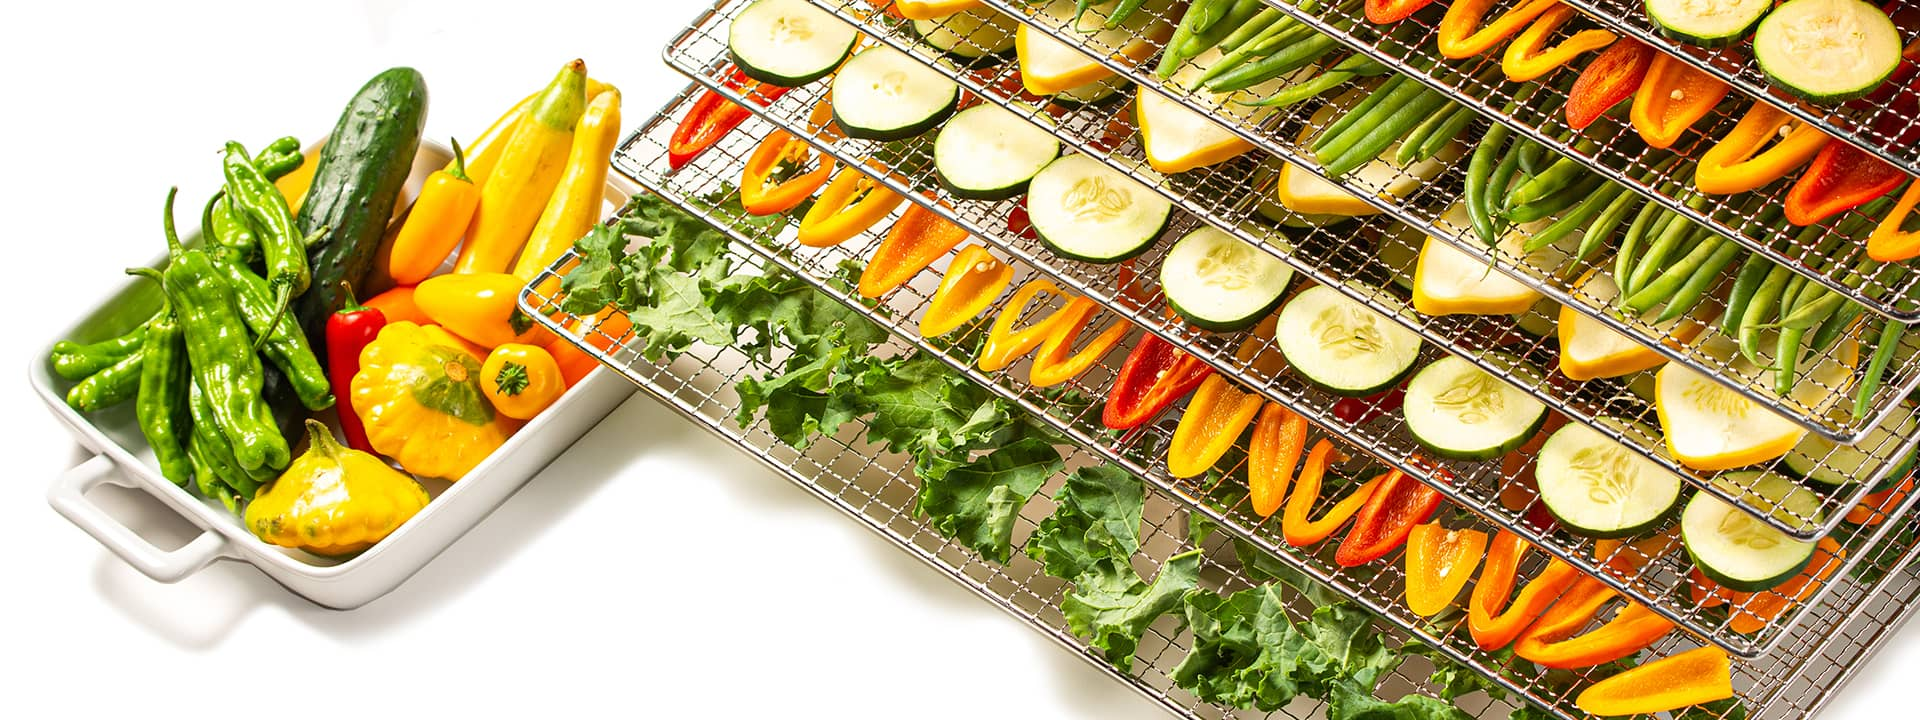 Colorful dried vegetables on dehydrator shelves